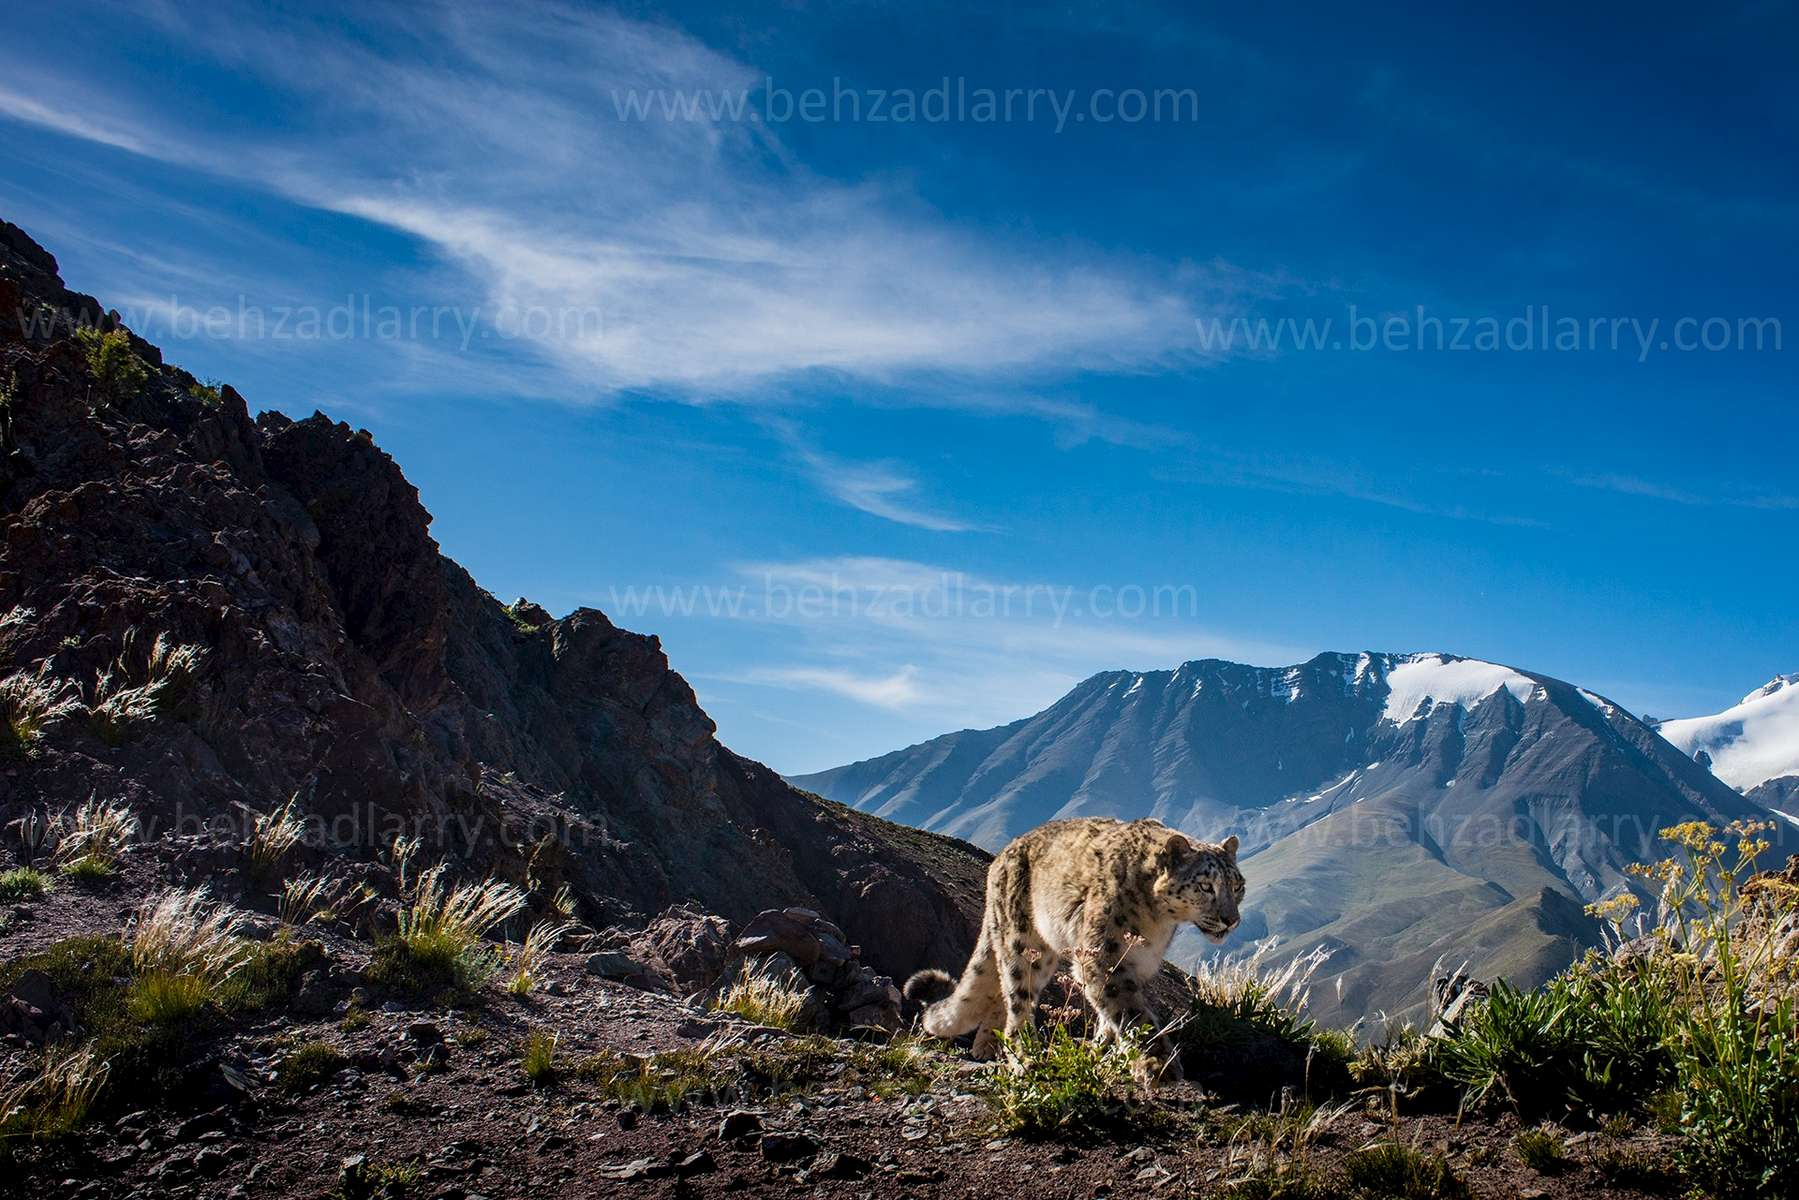 SnowLeopard-on-ridge-BehzadLarry